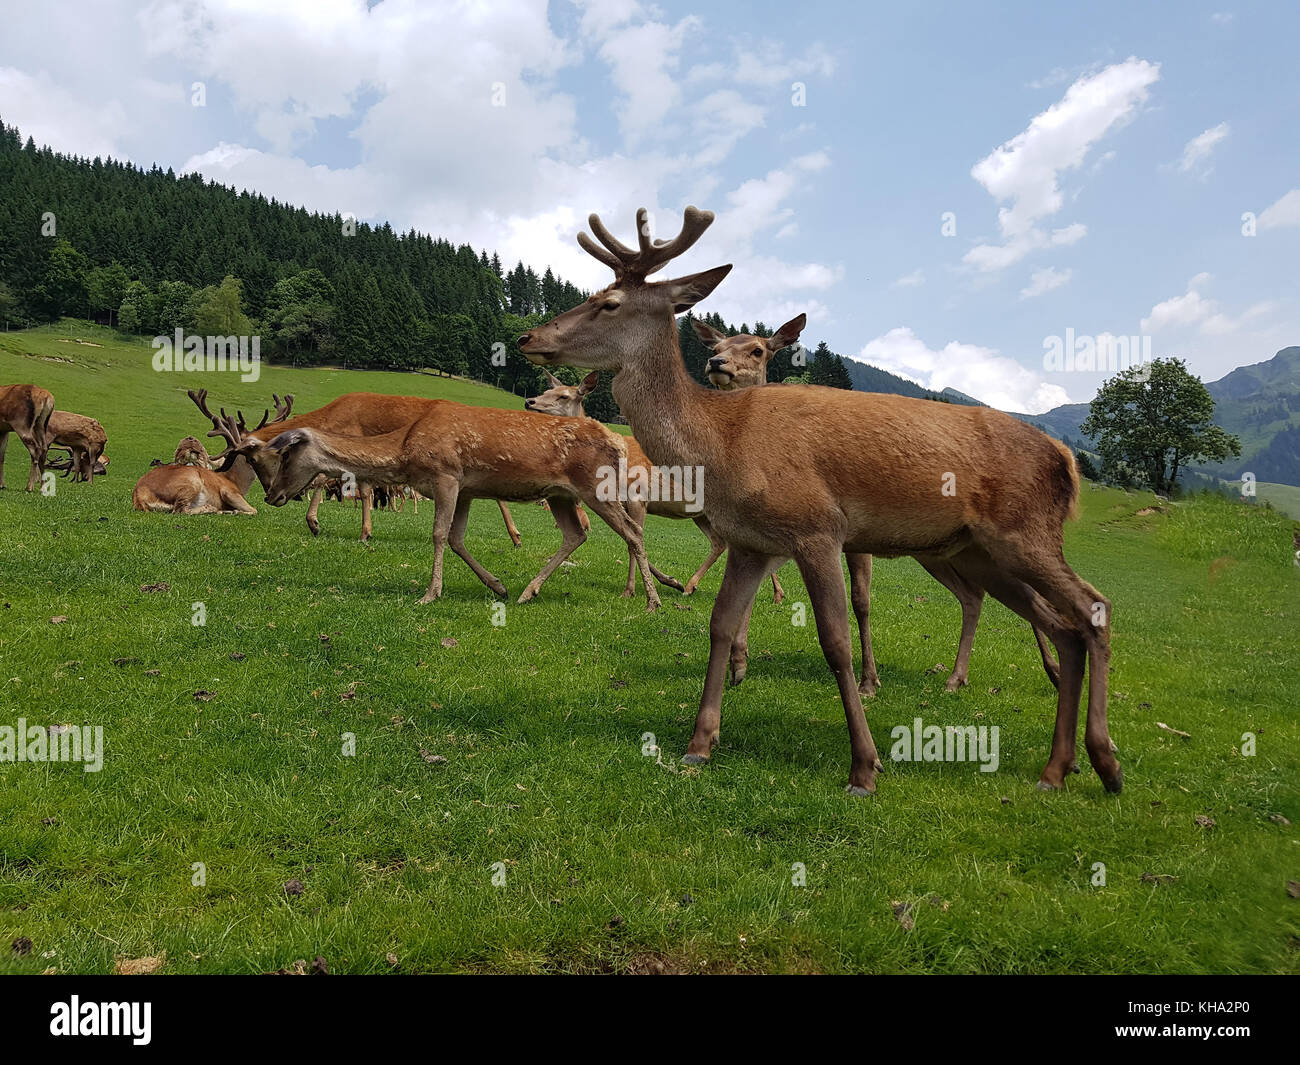 Rothirsch, Cervus elaphus, Rotwild Stock Photo